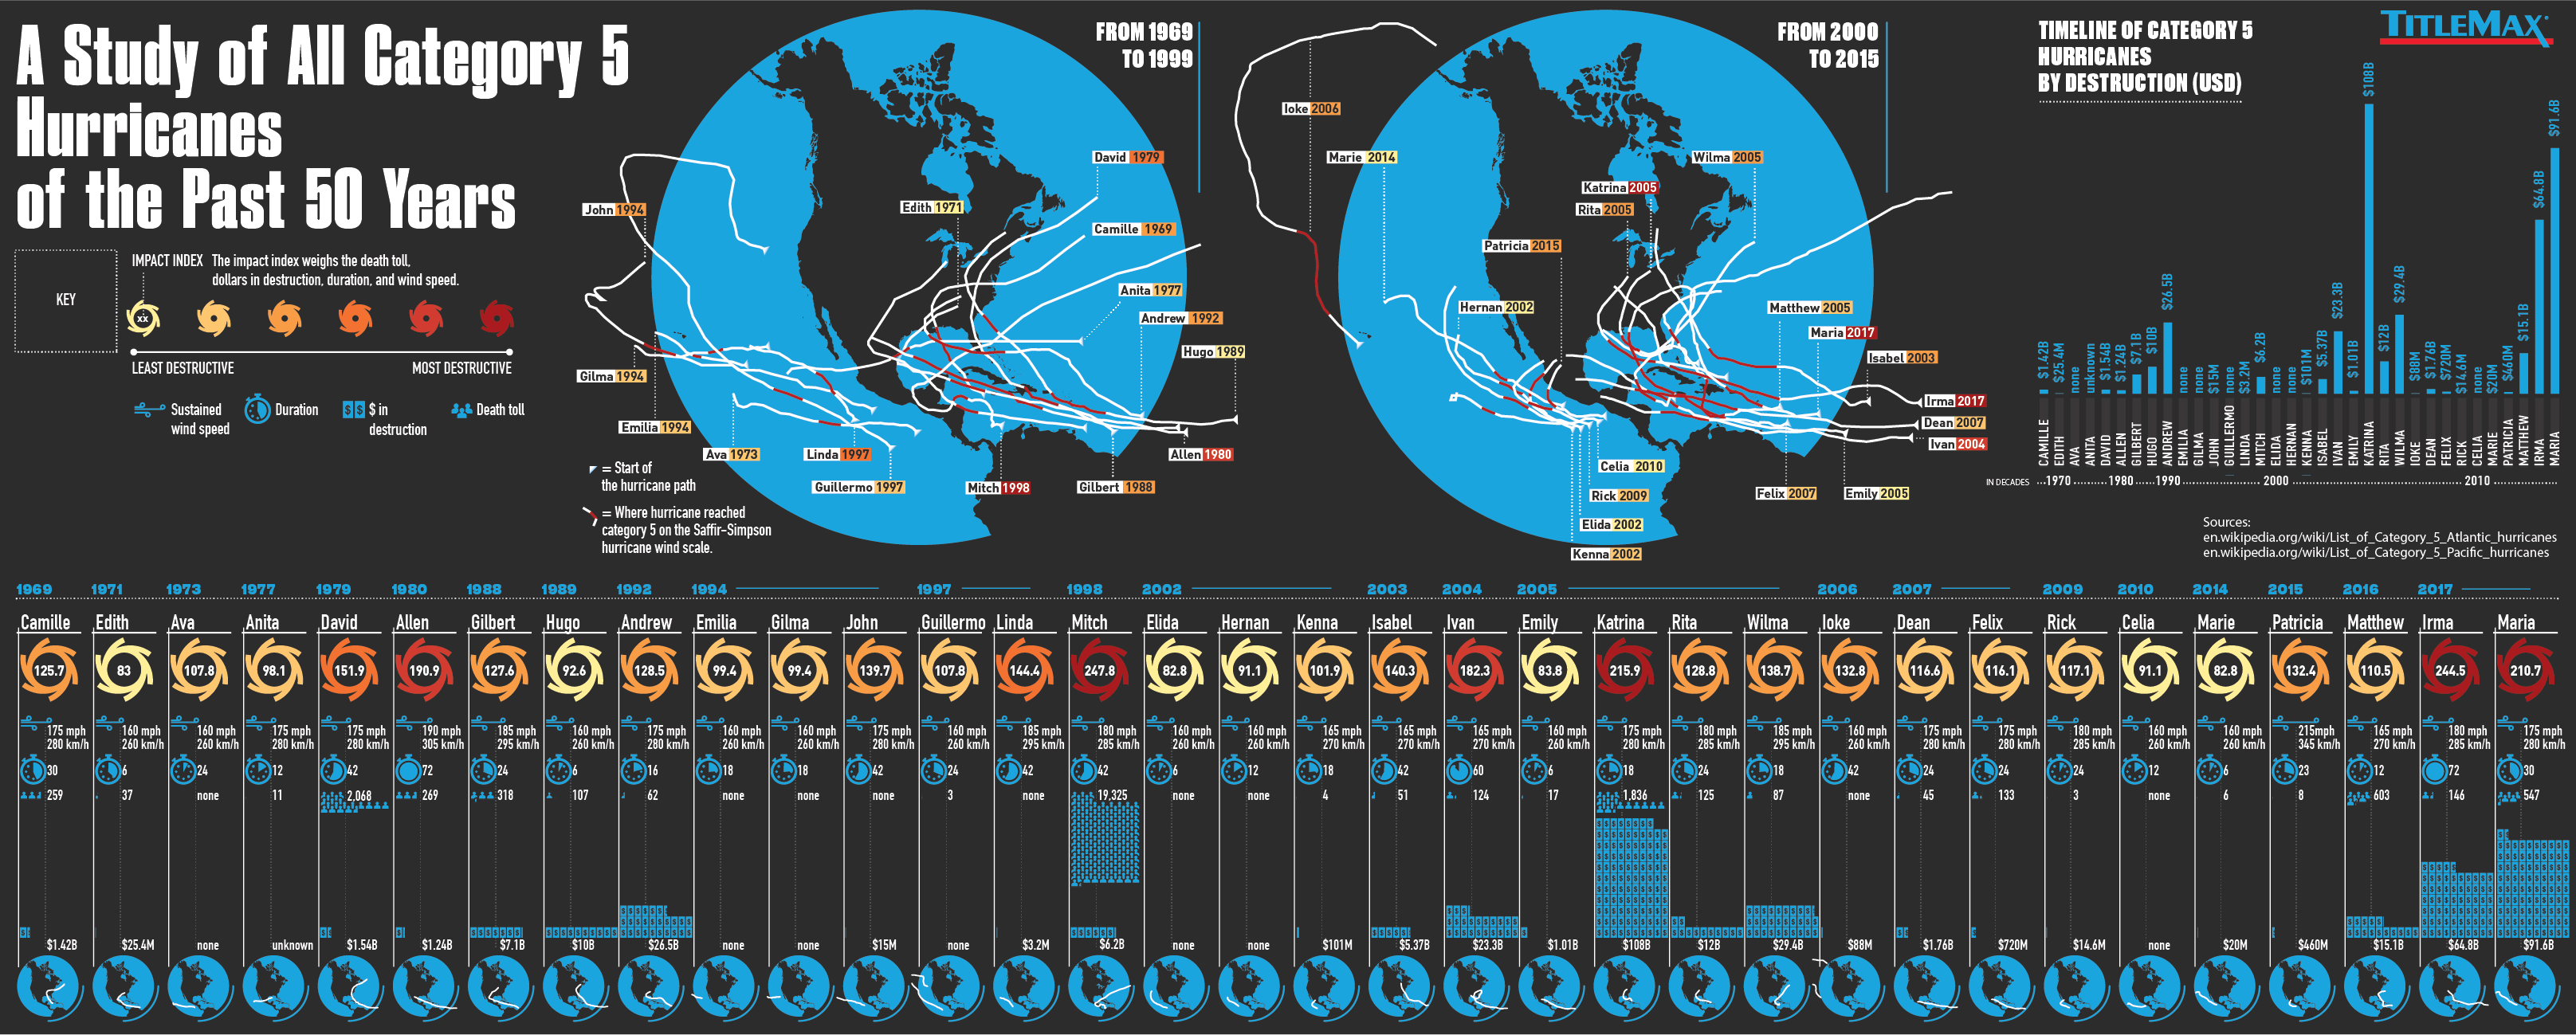 Category 5 Hurricanes past 50 years